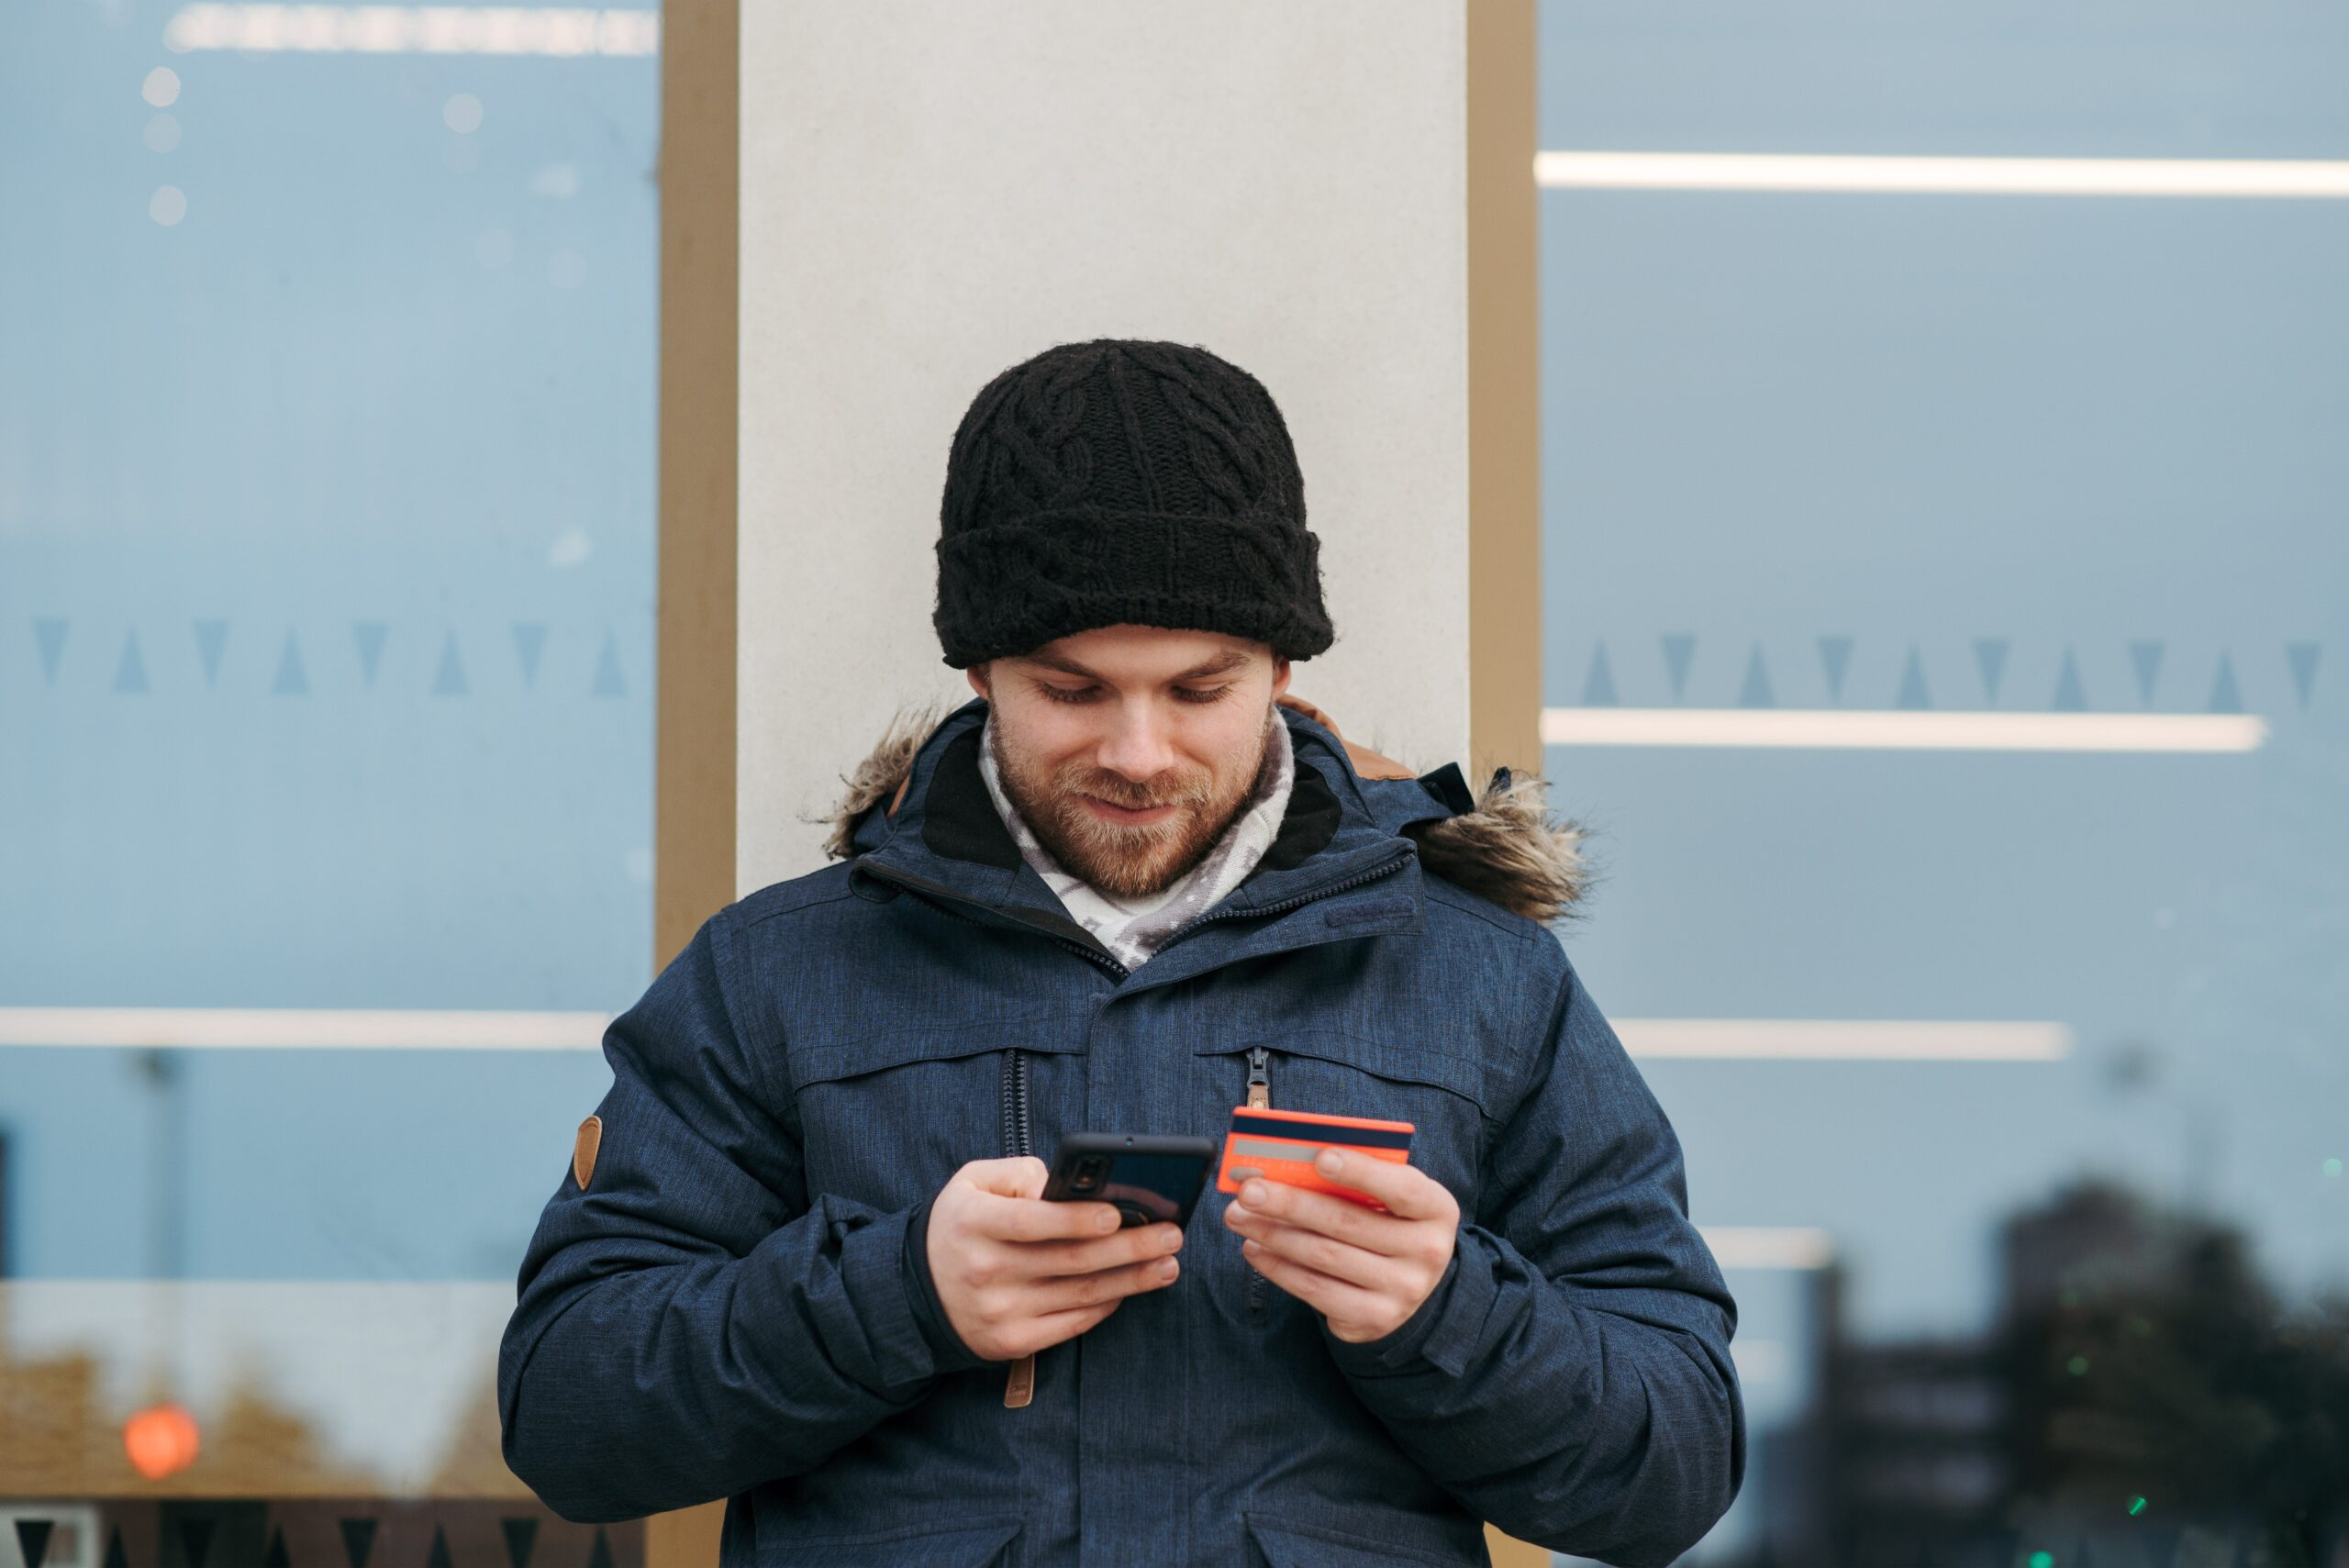 man on phone with credit card in hand